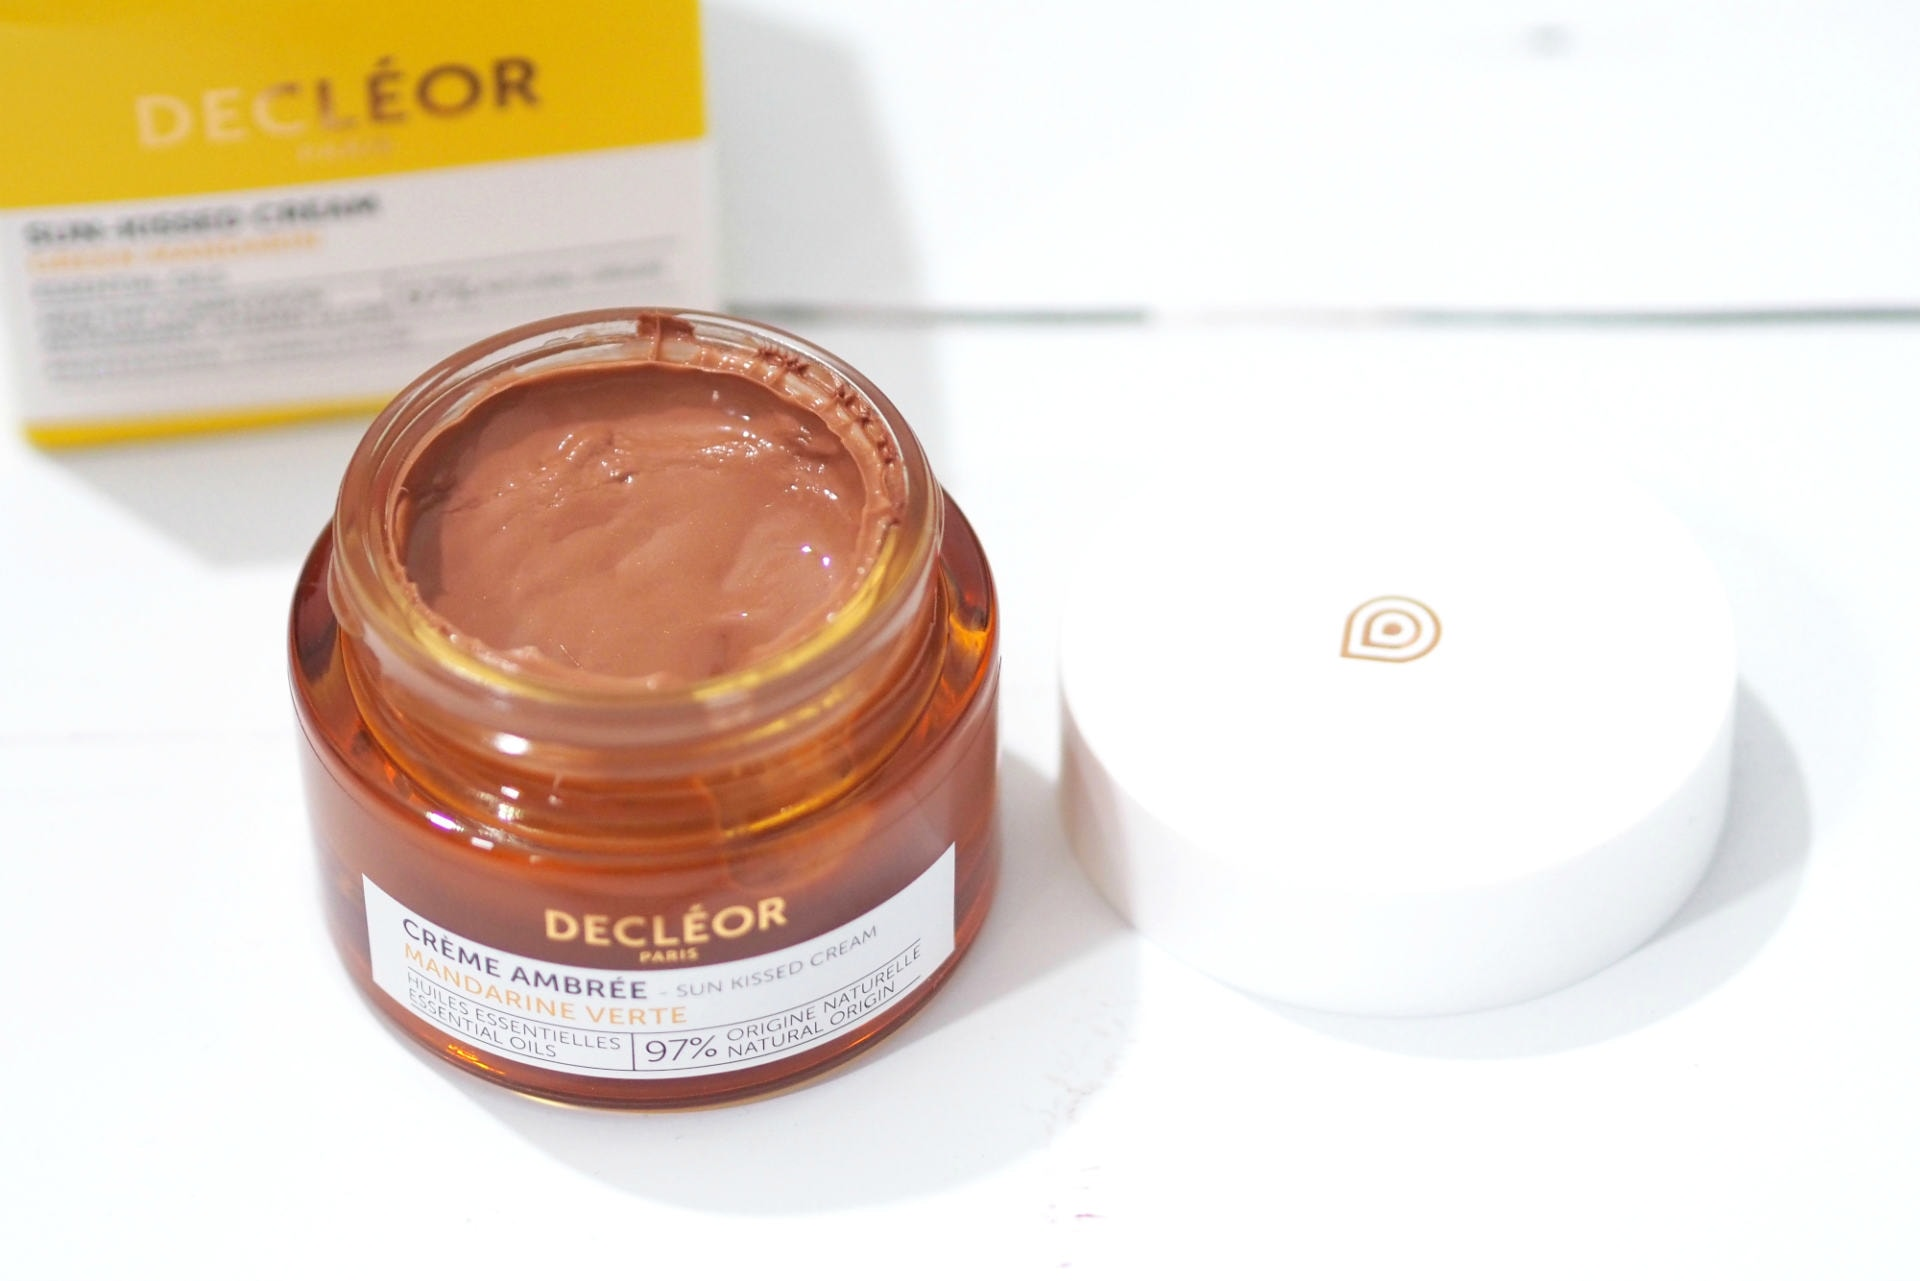 Decléor Green Mandarin Sun-Kissed Glow Cream Review and Swatches